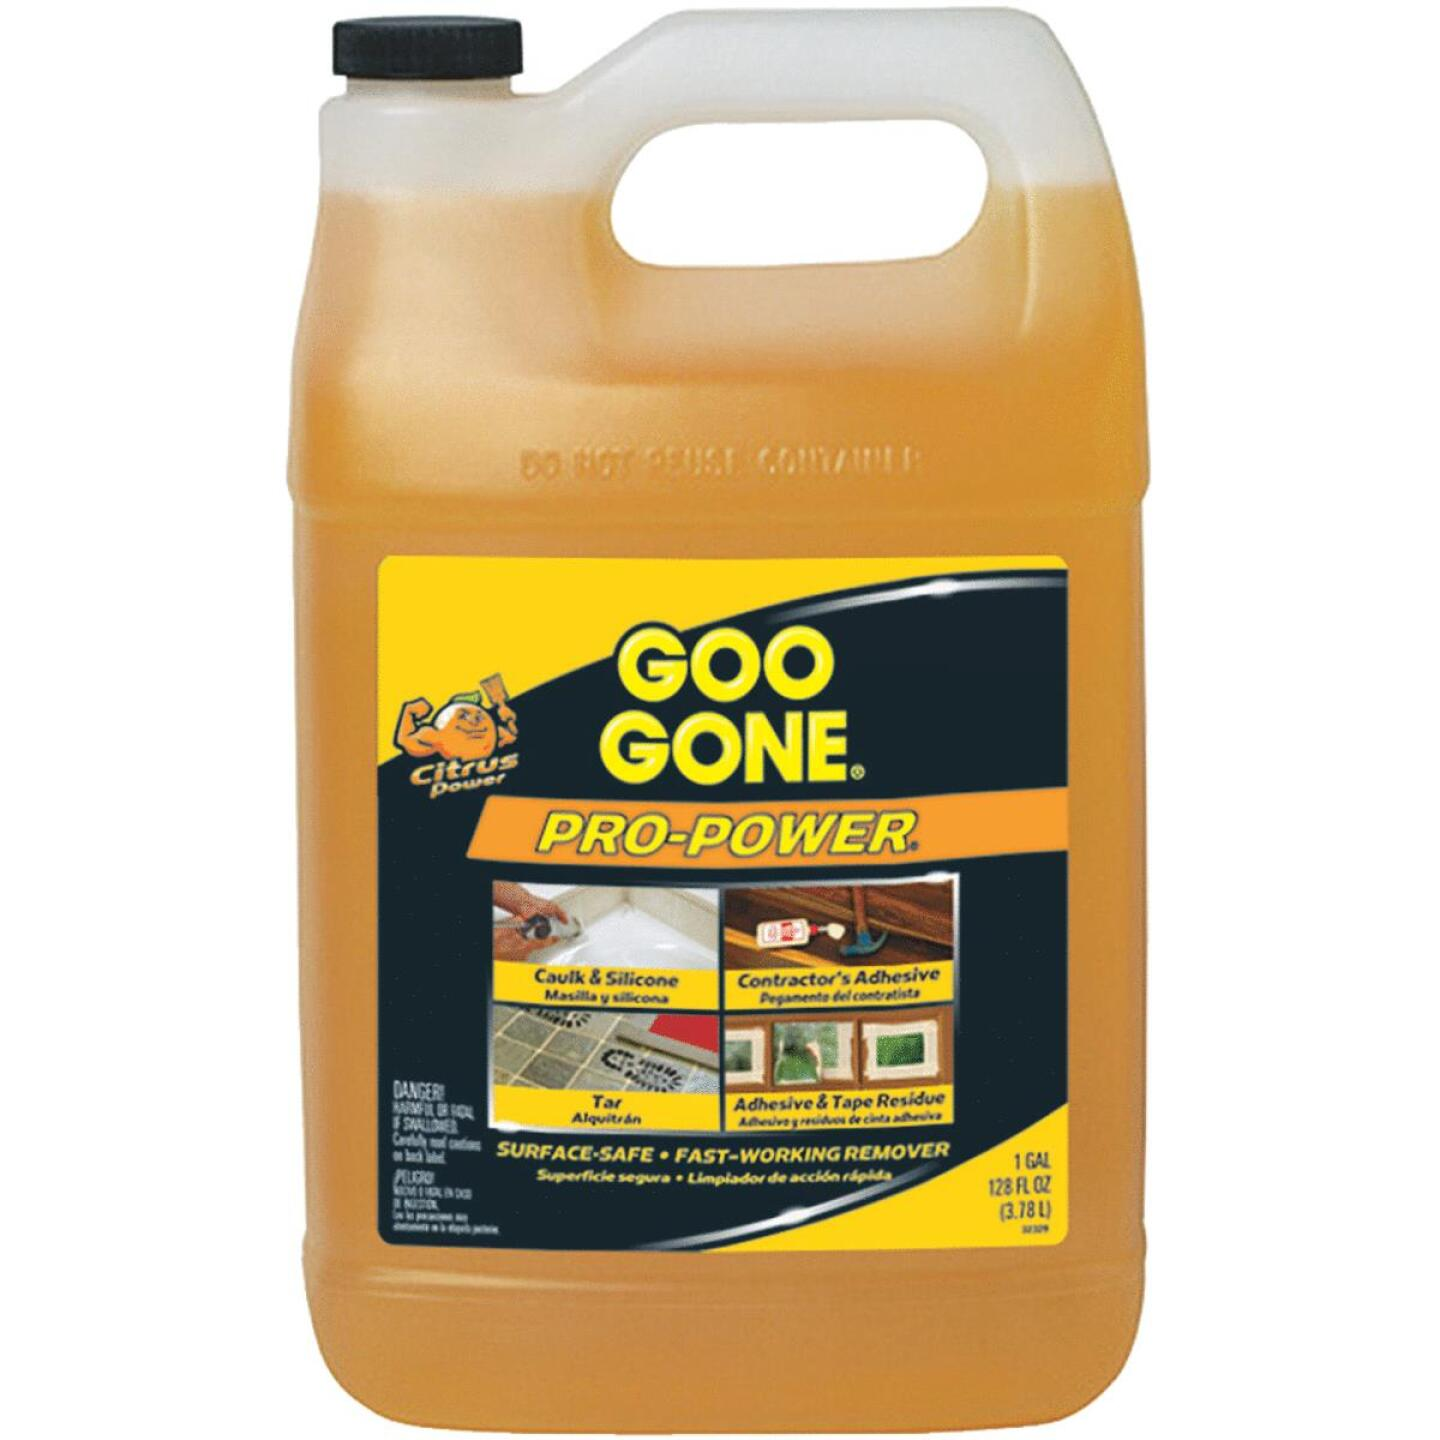 Goo Gone 1 Gal. Pro-Power Adhesive Remover Image 185